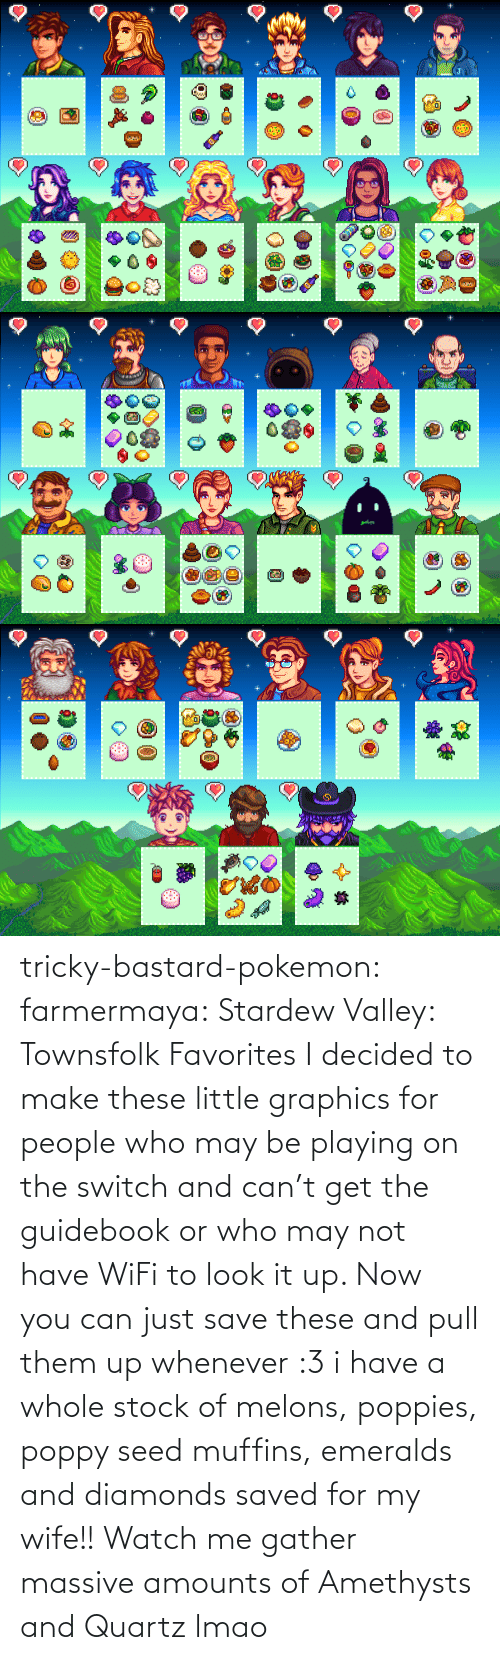 them: tricky-bastard-pokemon:  farmermaya: Stardew Valley: Townsfolk Favorites  I decided to make these little graphics for people who may be playing on the switch and can't get the guidebook or who may not have WiFi to look it up. Now you can just save these and pull them up whenever :3   i have a whole stock of melons, poppies, poppy seed muffins, emeralds and diamonds saved for my wife!!    Watch me gather massive amounts of Amethysts and Quartz lmao